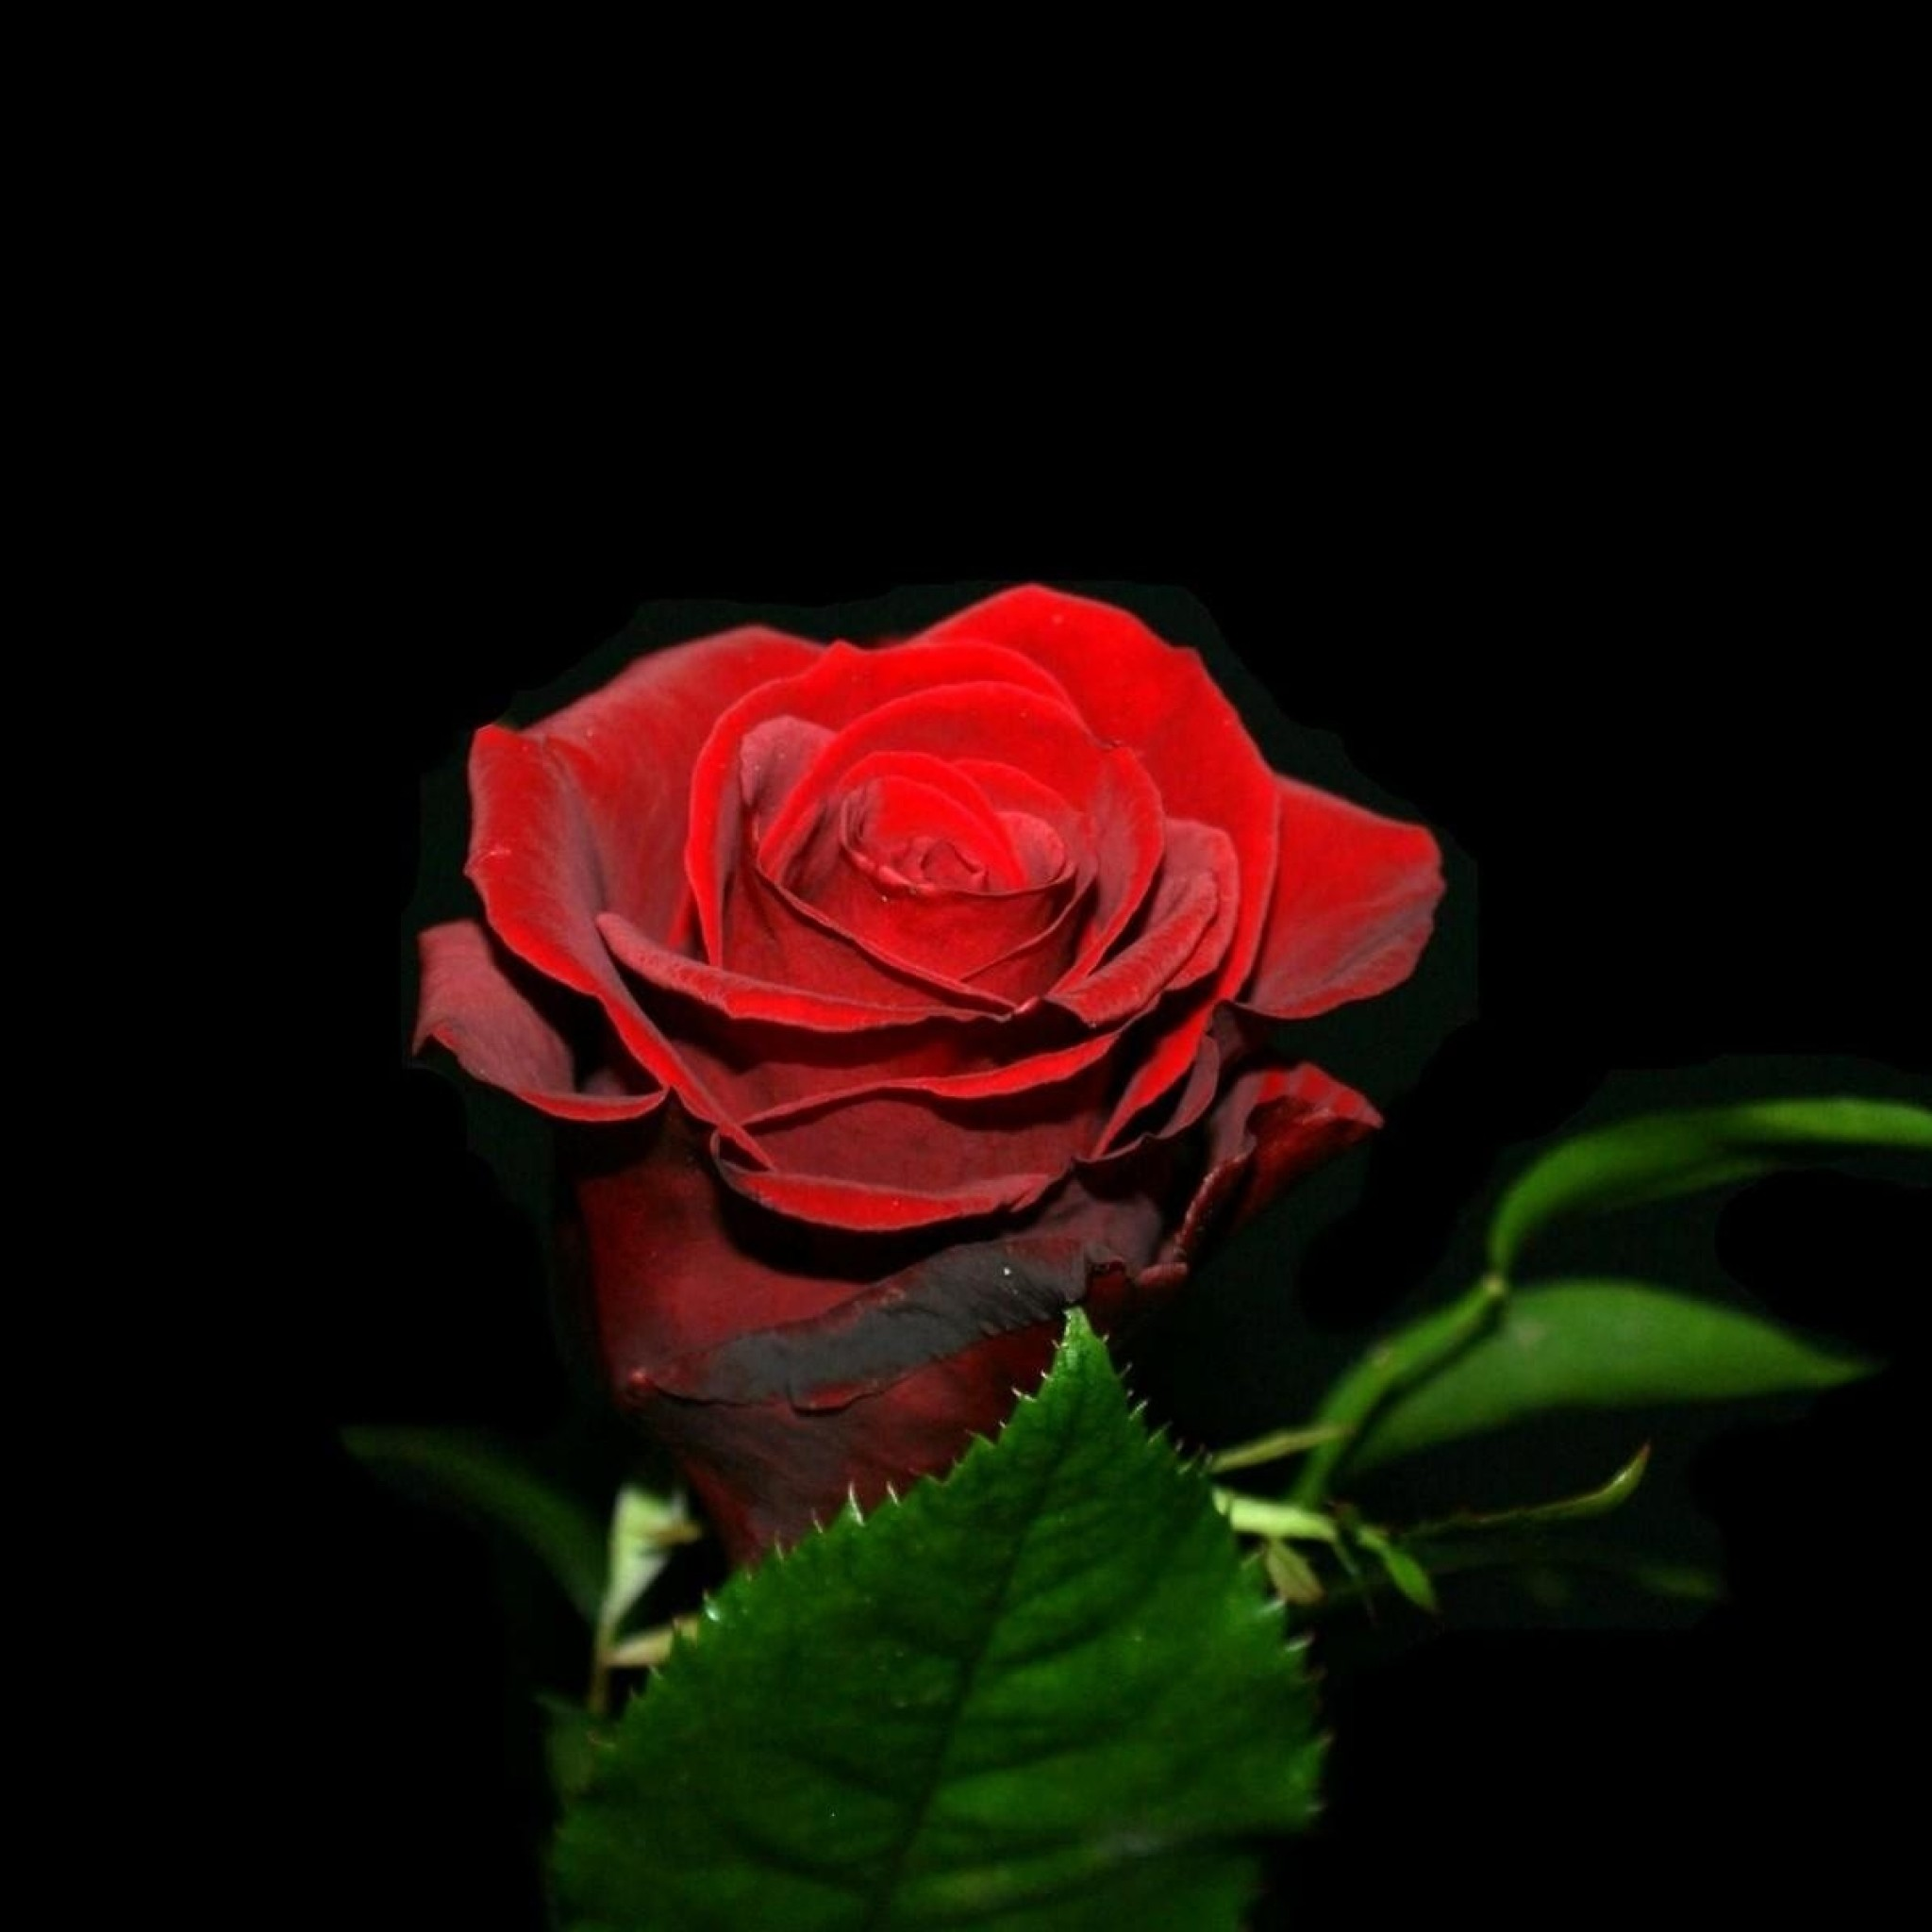 Black and Red Rose Wallpaper (63+ images)